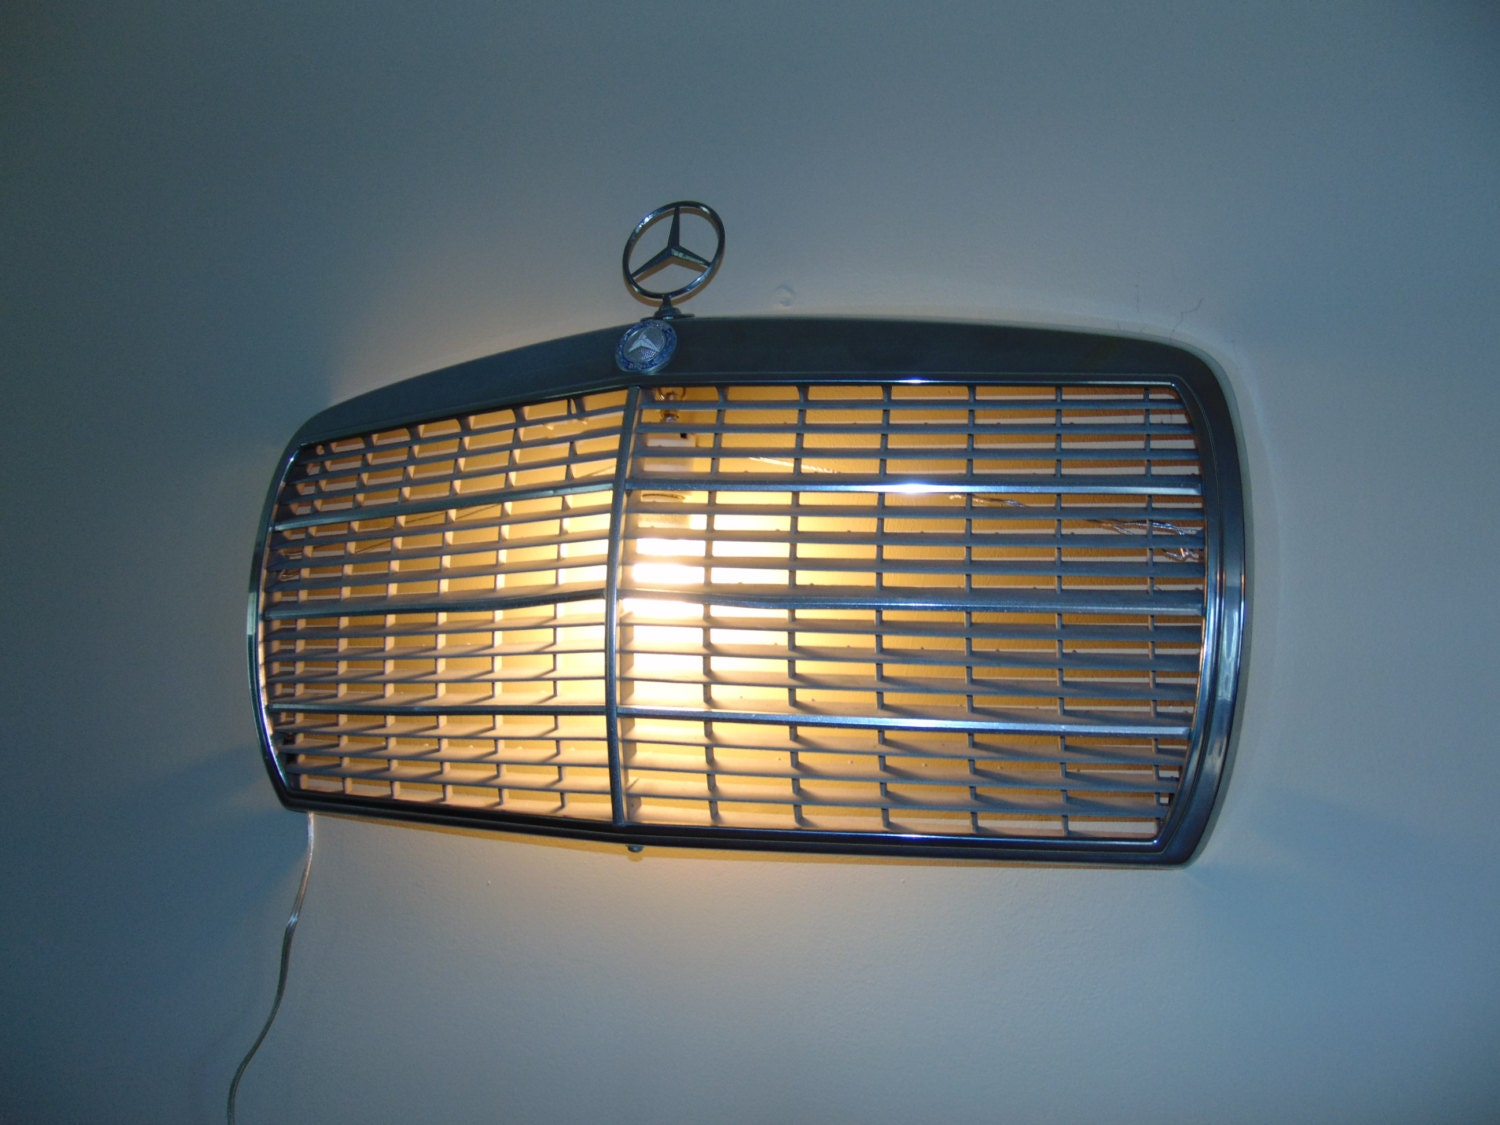 Vintage mercedes benz chrome grille wall light scone for Mercedes benz grille